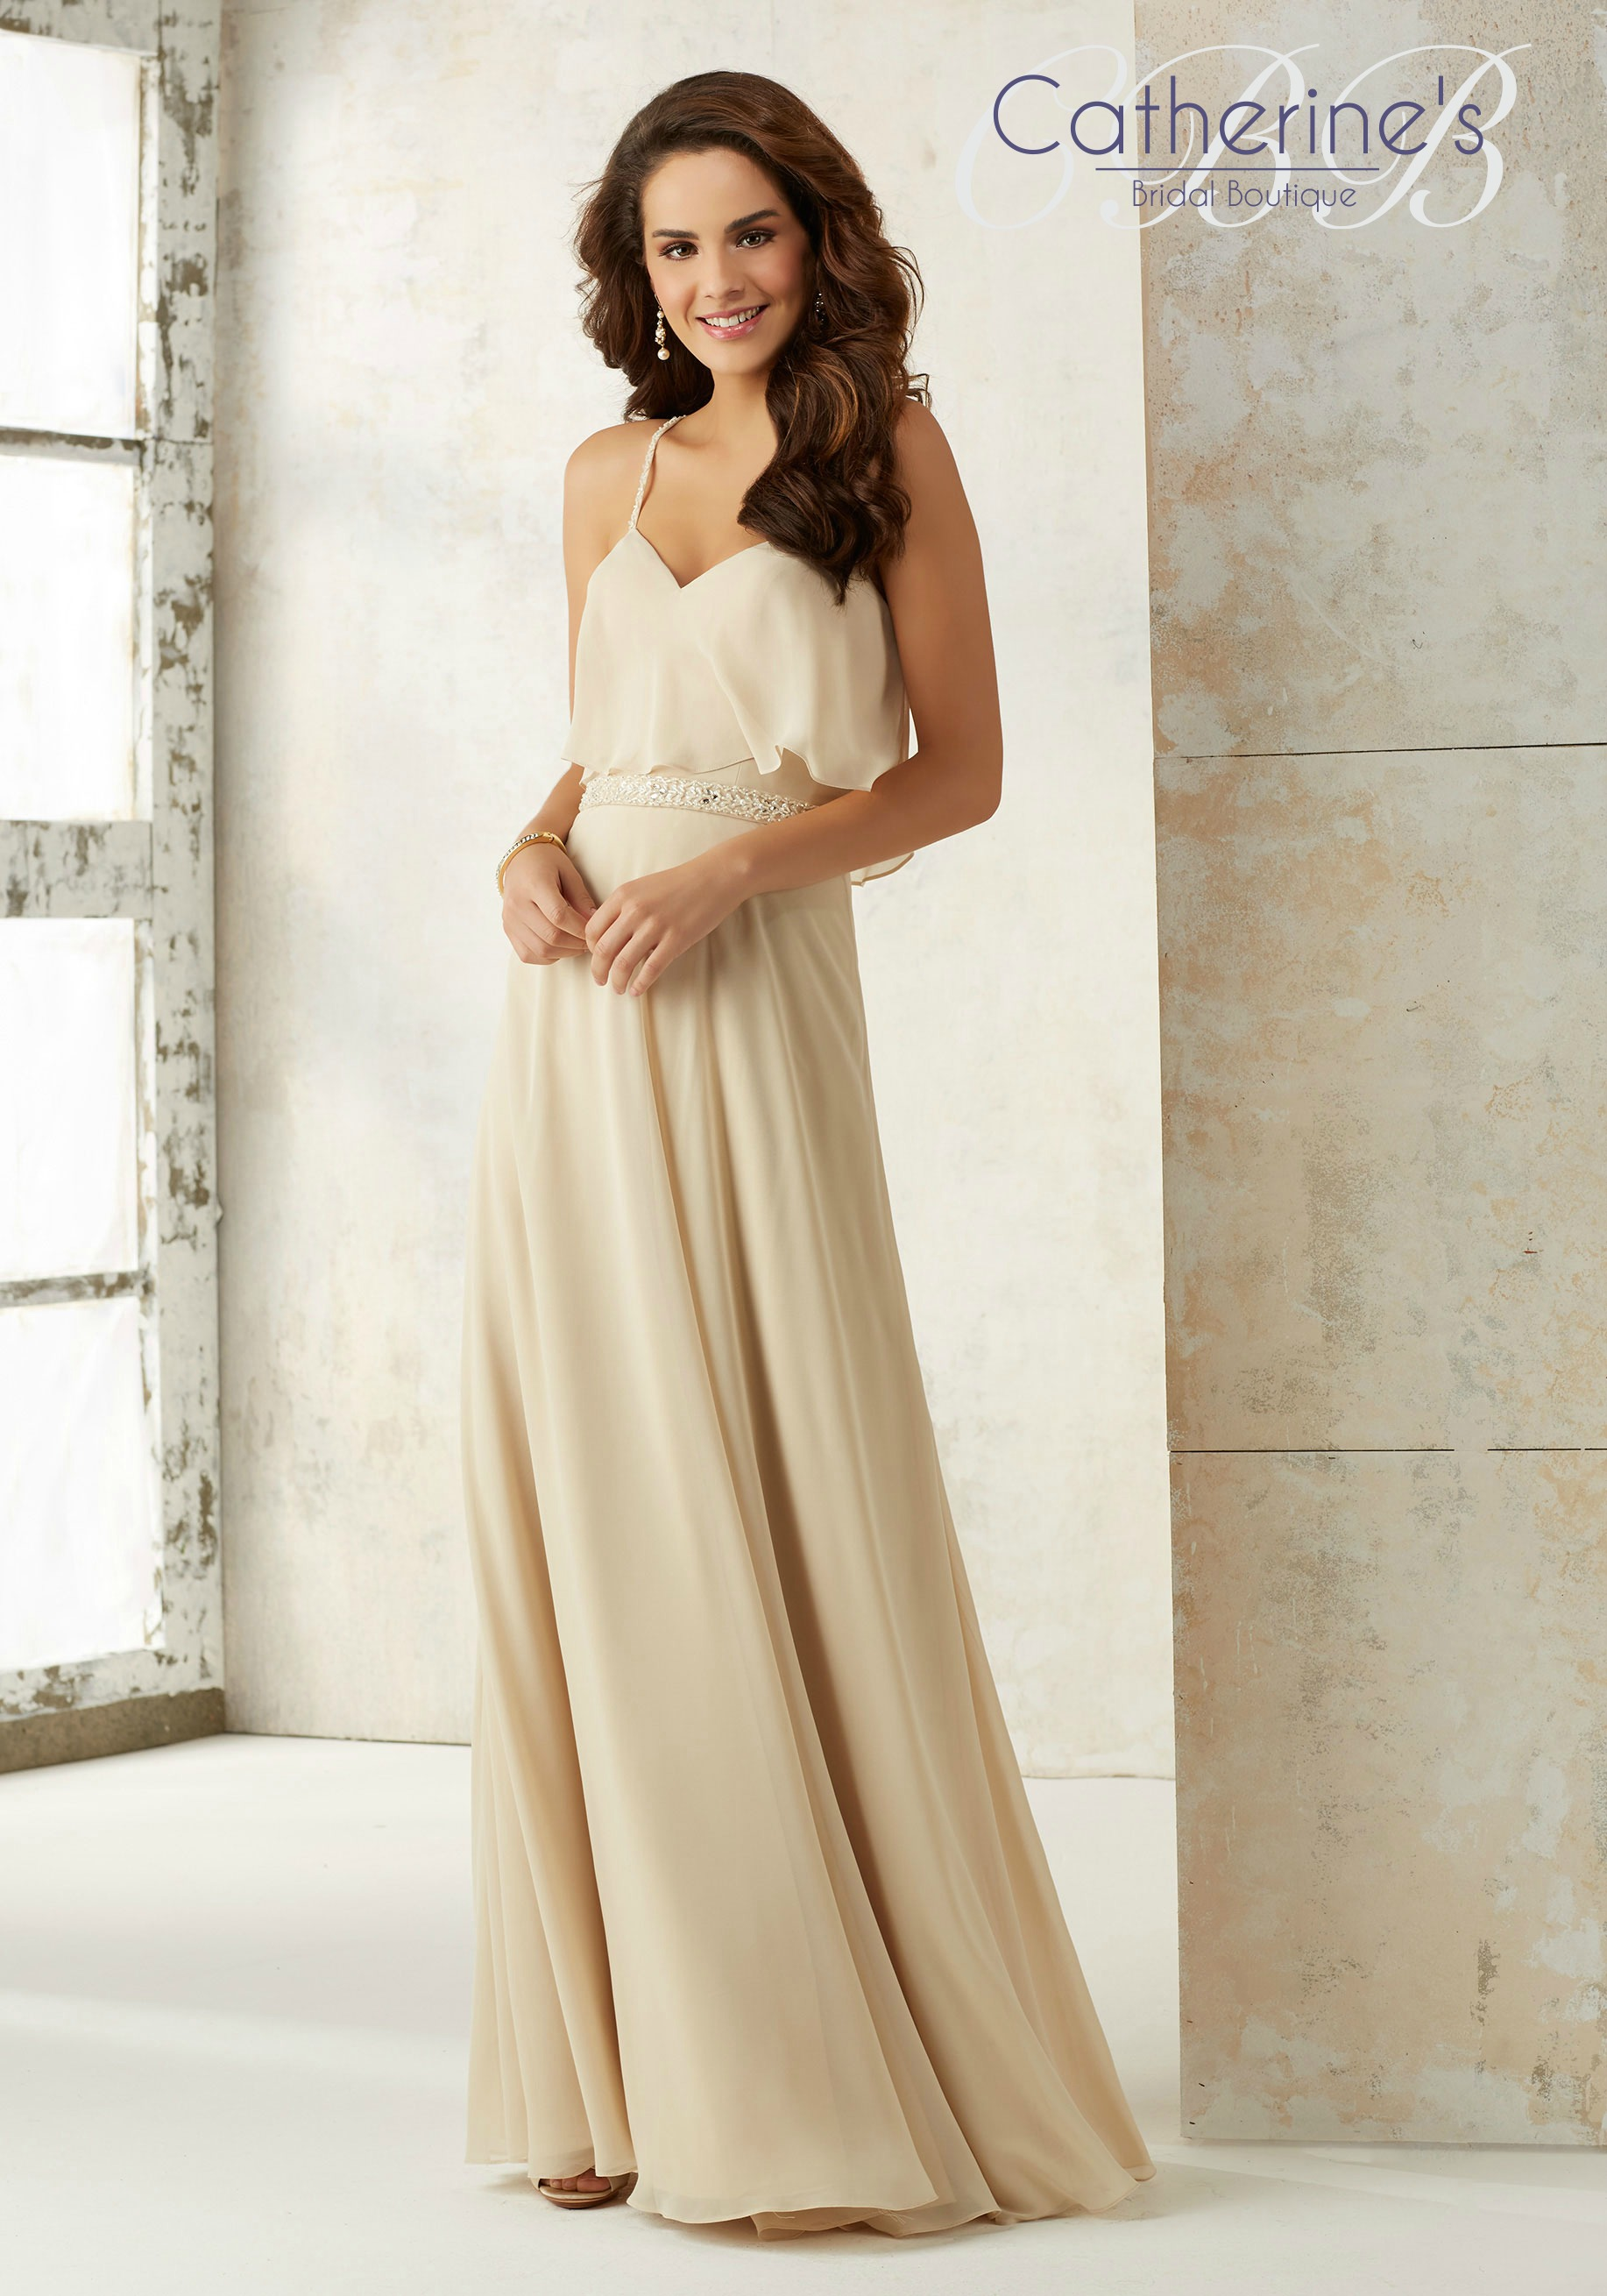 d4483c6c72f Bridesmaids dress inventory at Catherine s Bridal Boutique